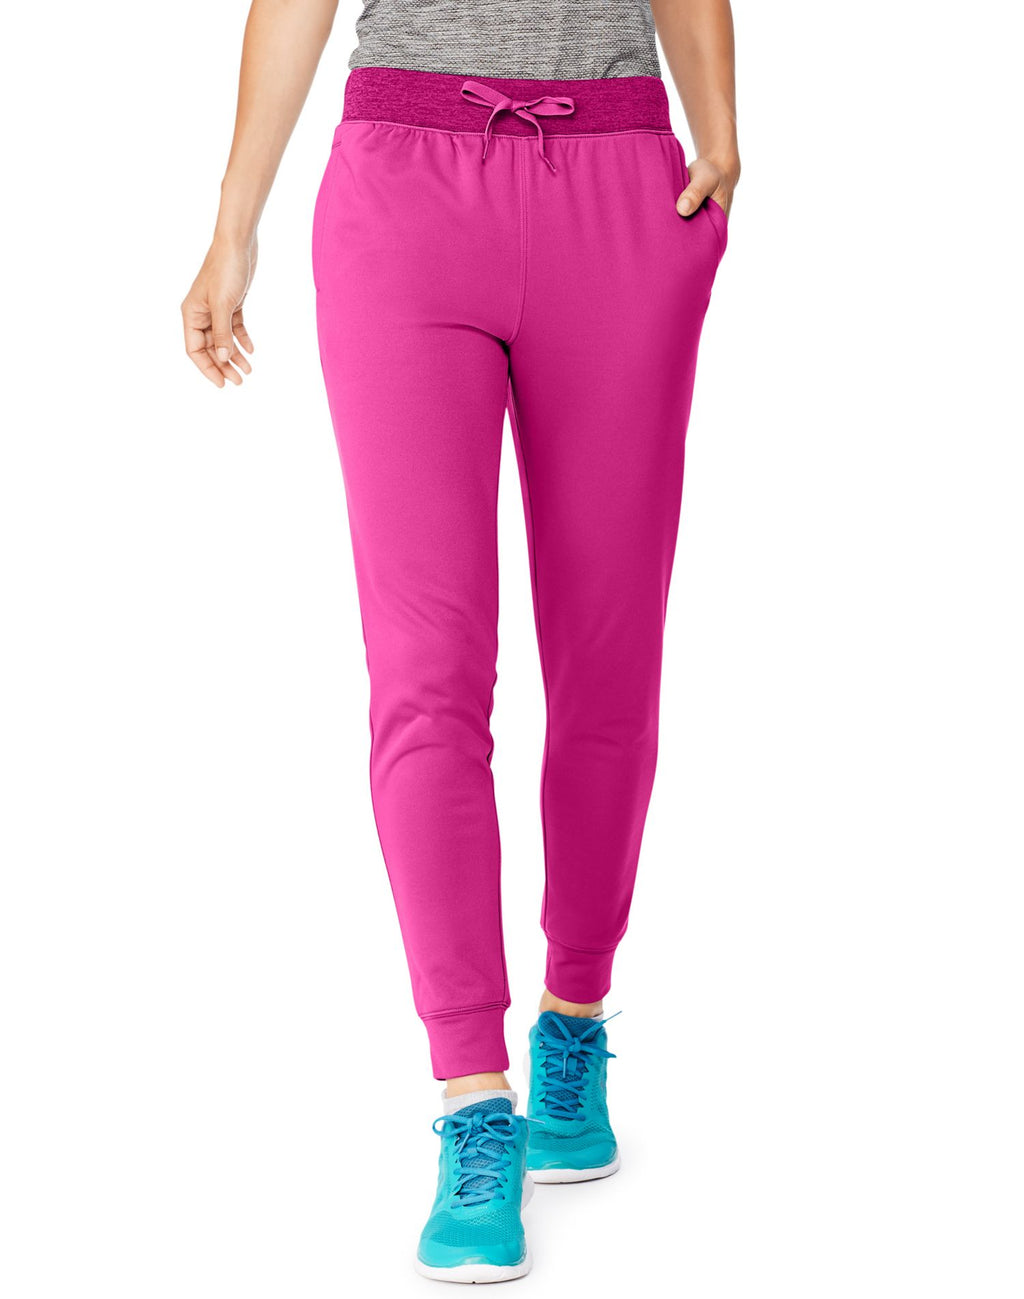 Hanes Womens Sport™ Performance Fleece Jogger Pants With Pockets